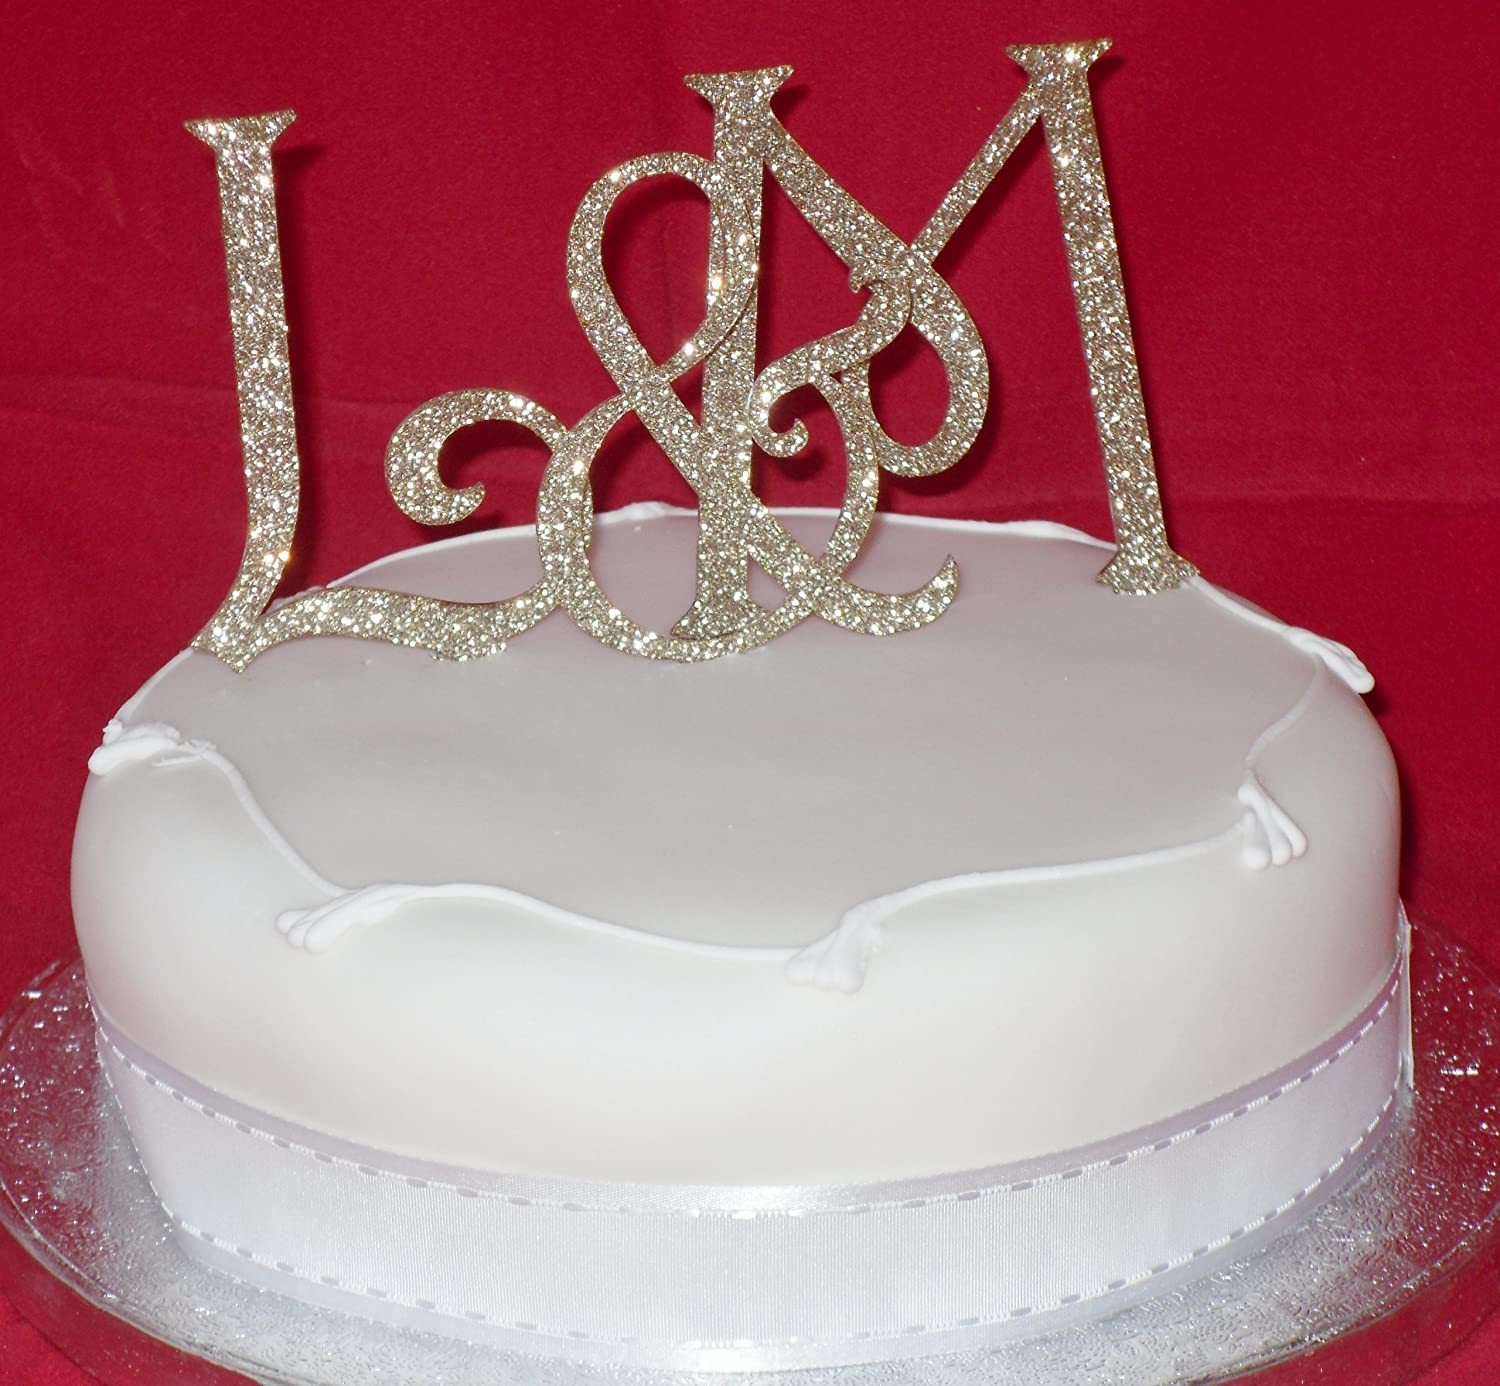 Glitter Letters For Cakes images